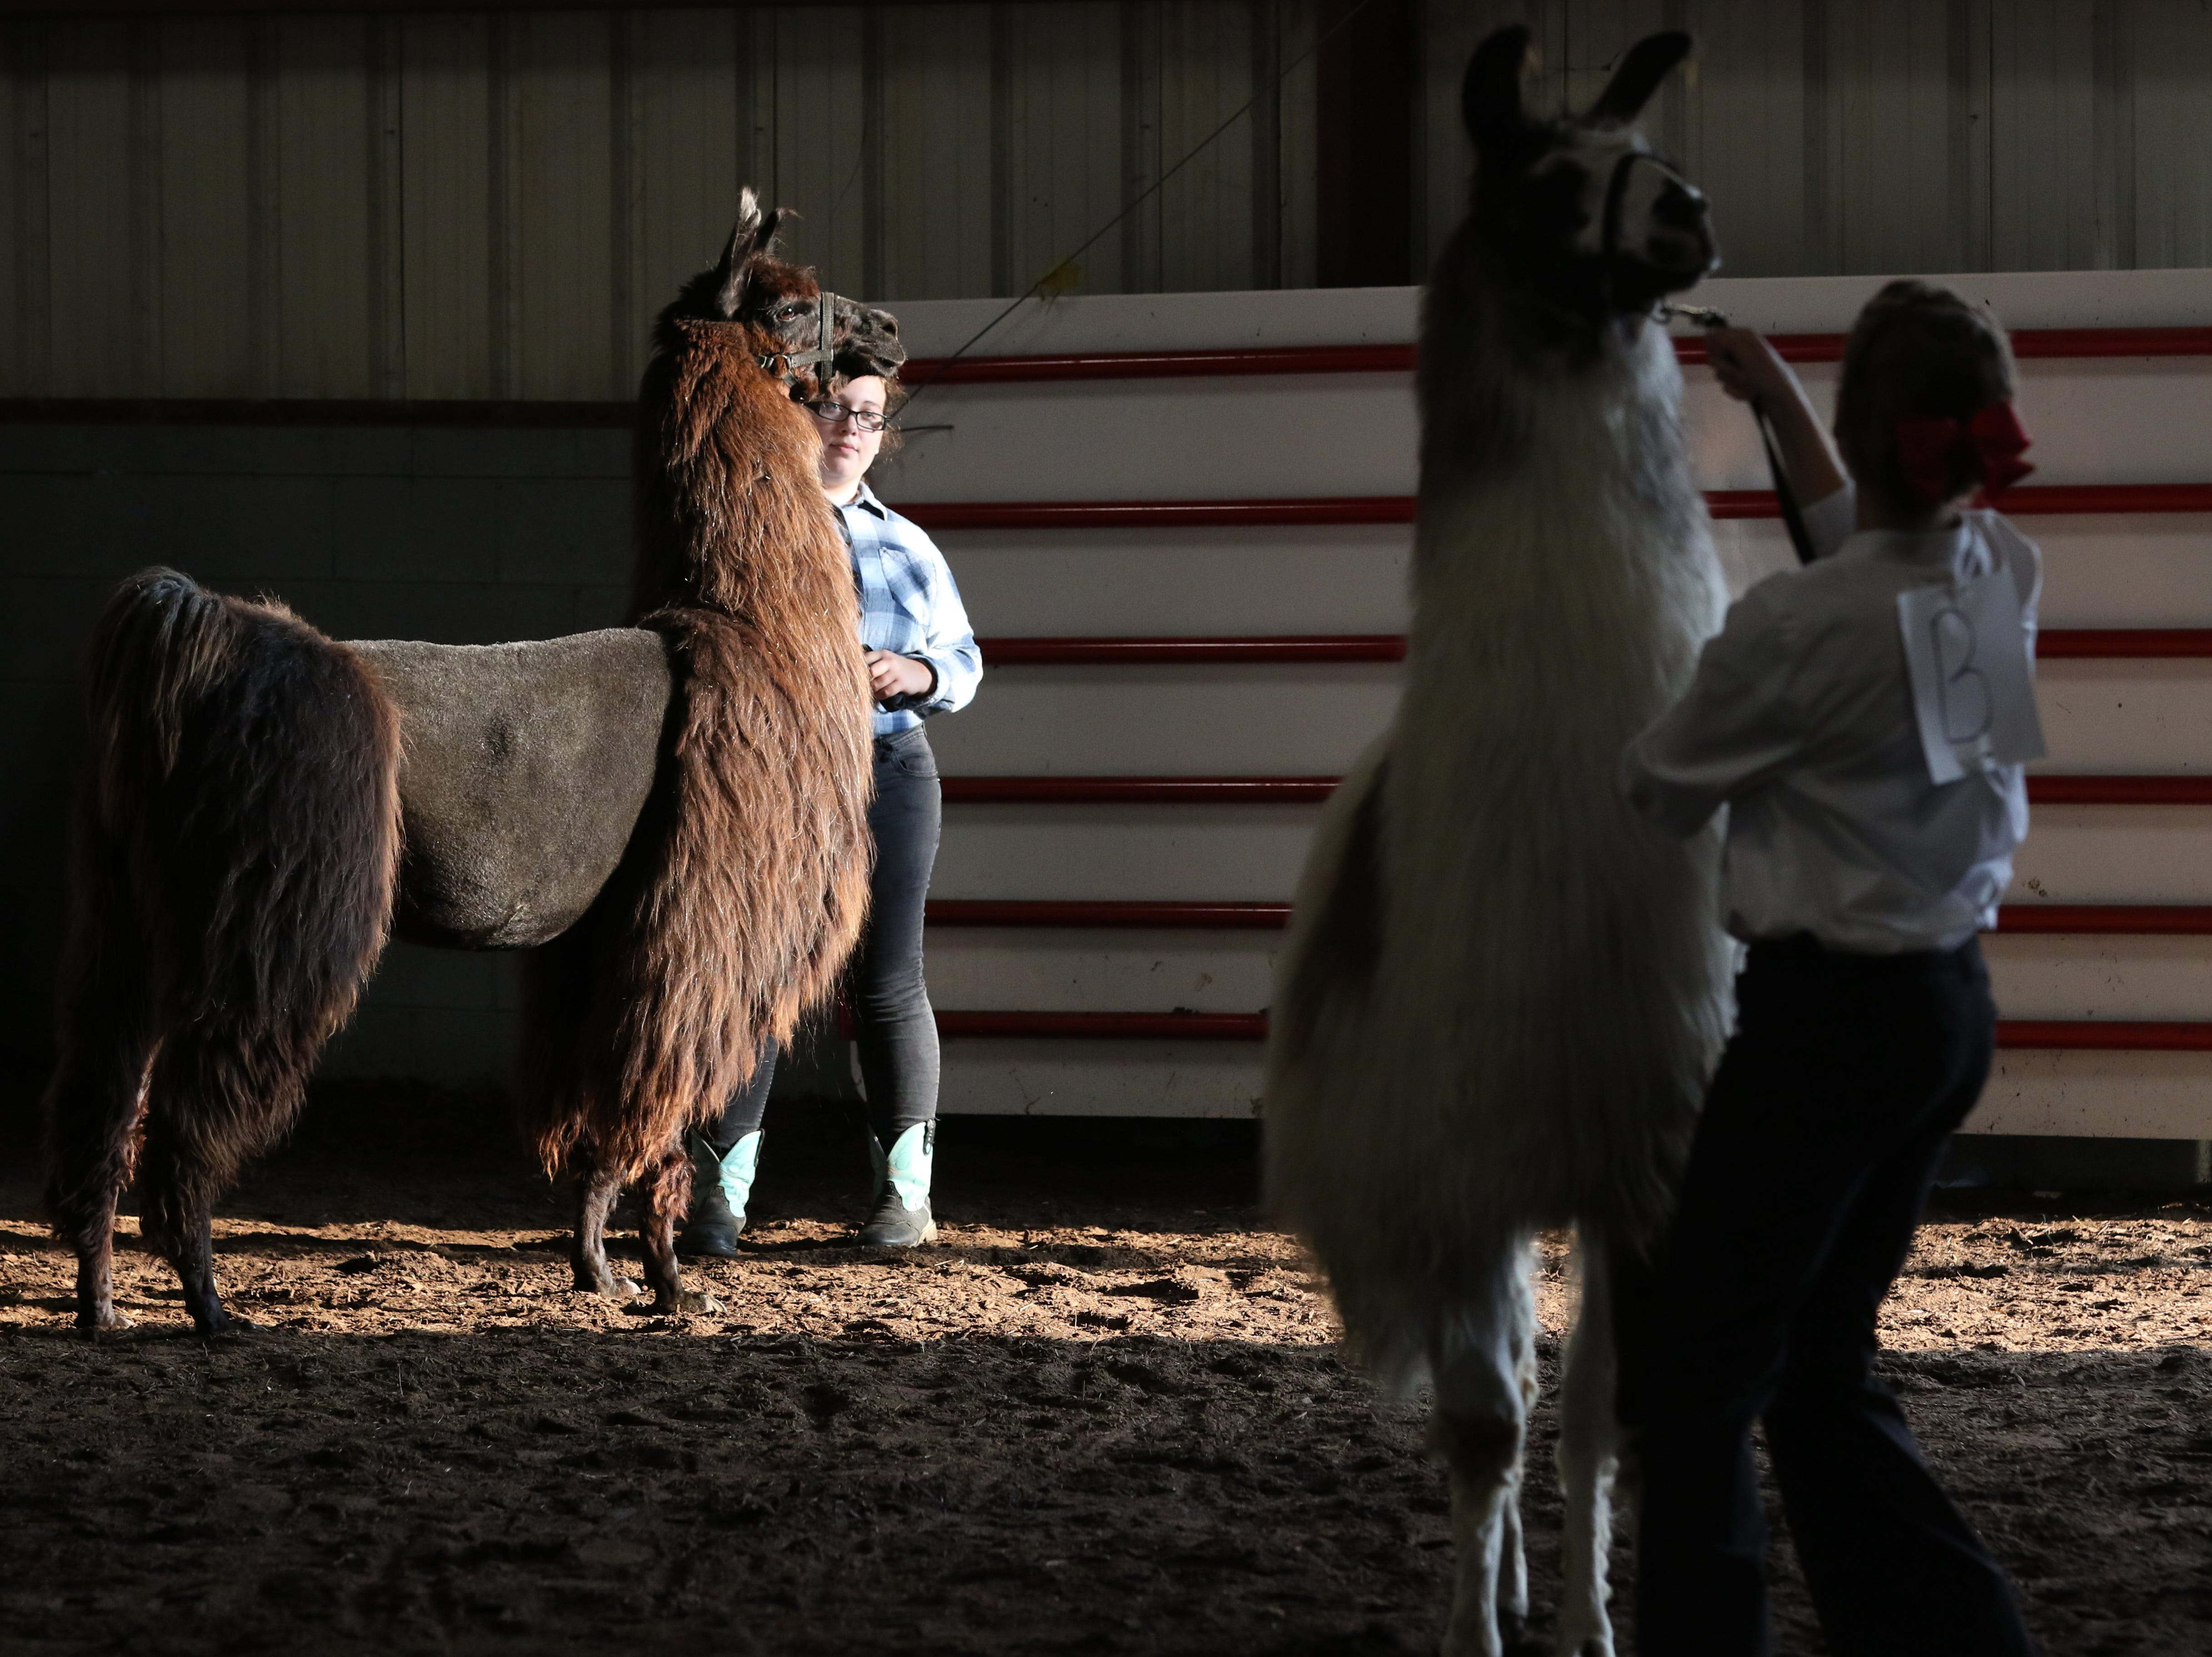 Emily Burrier waits to show a llama during the Showman of Showmen at the Coshocton County Fair on Wednesday.